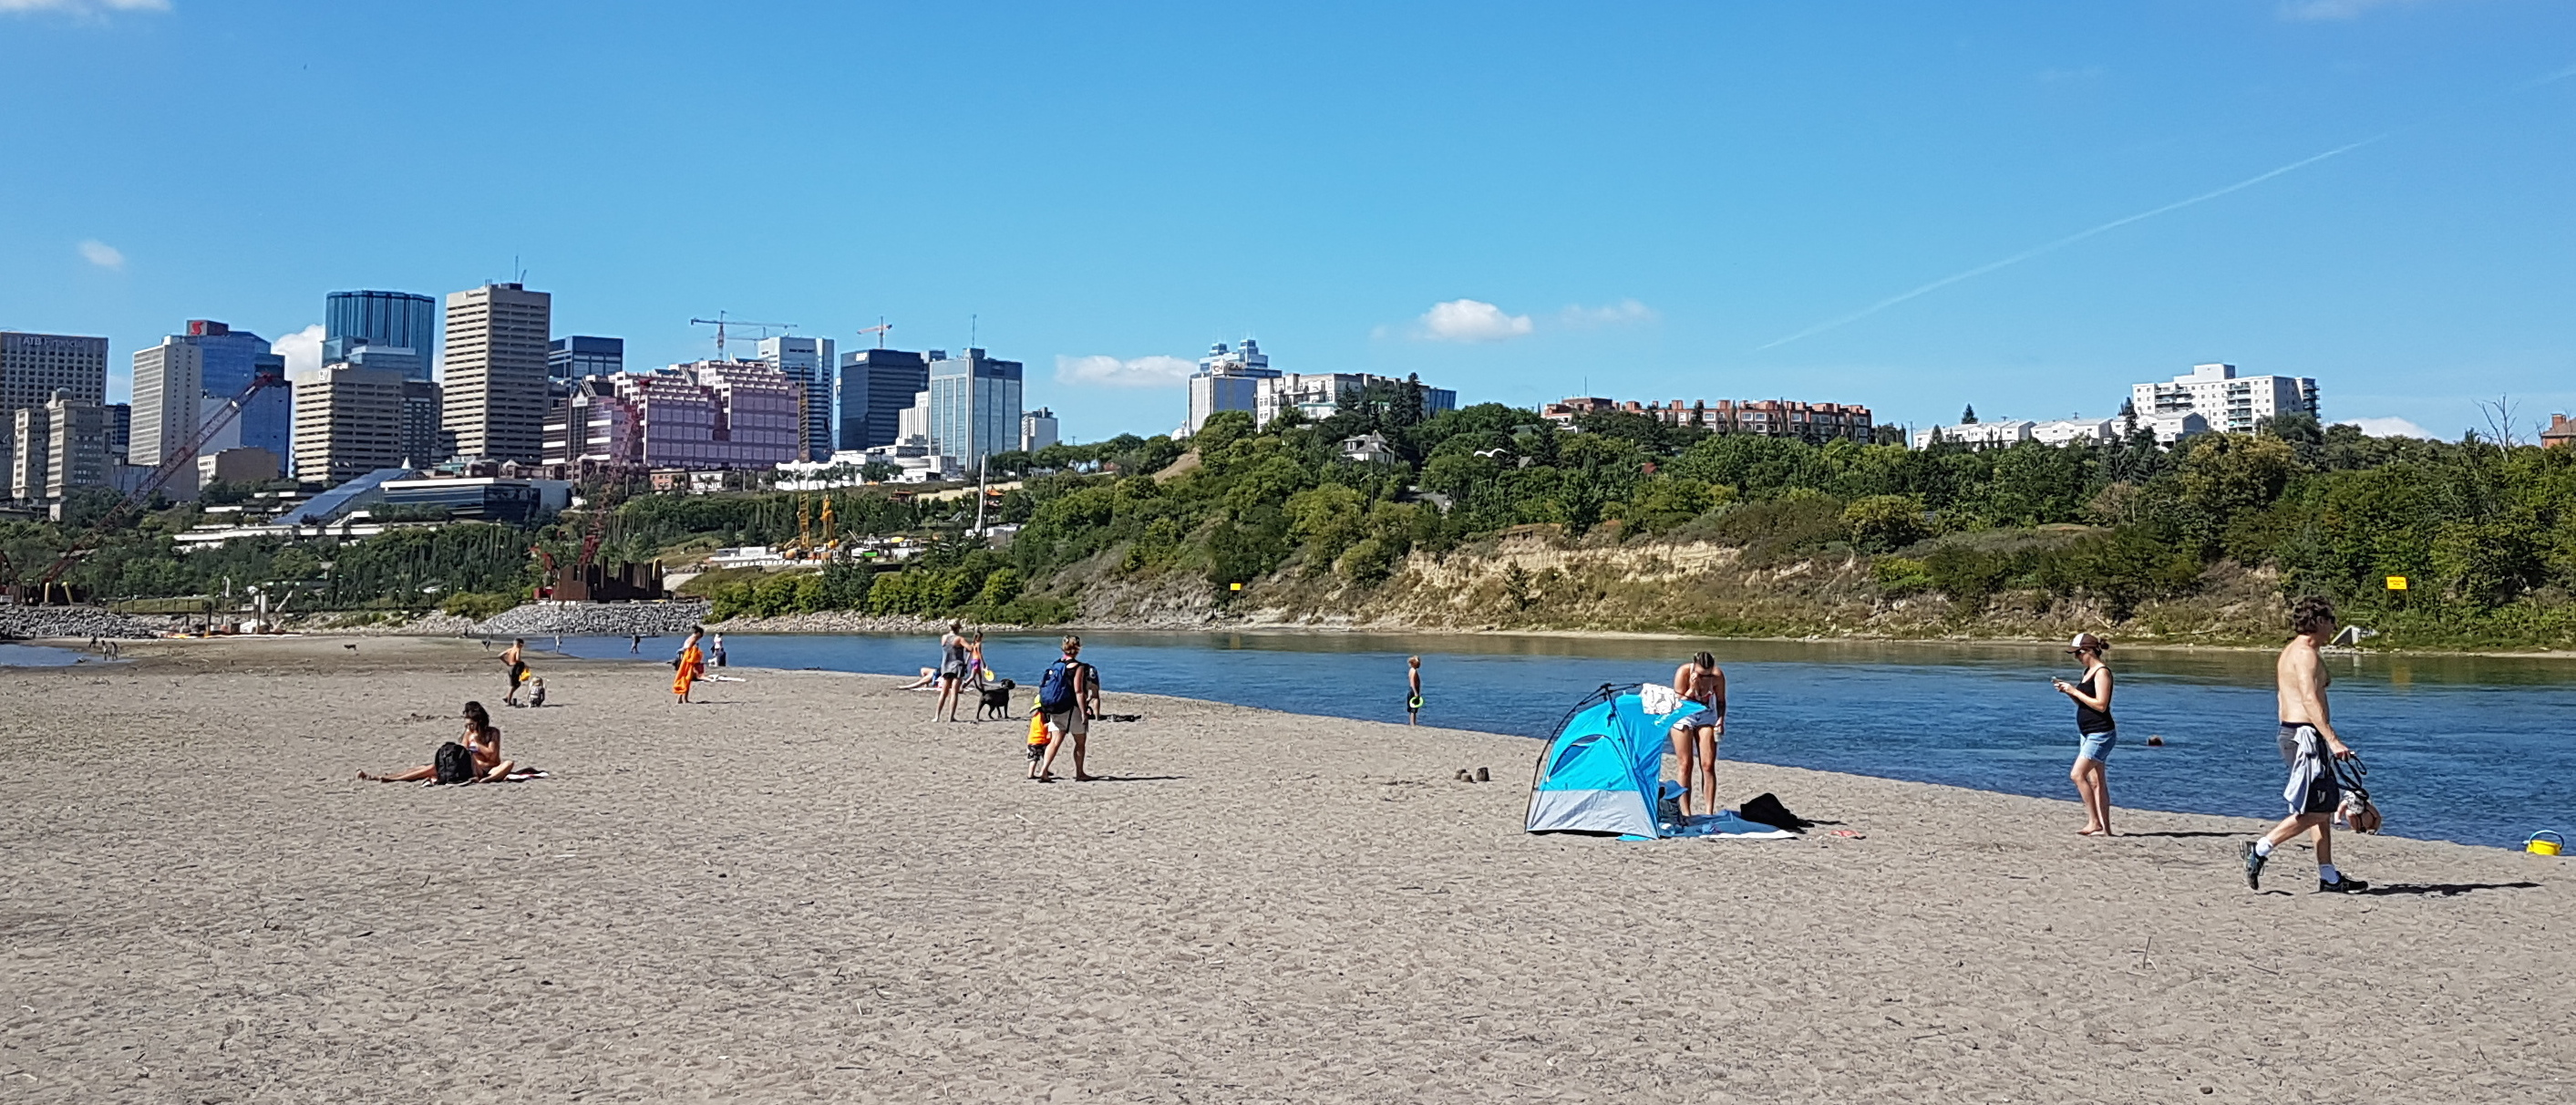 Water quality test results for Tuesday, Sept. 5th